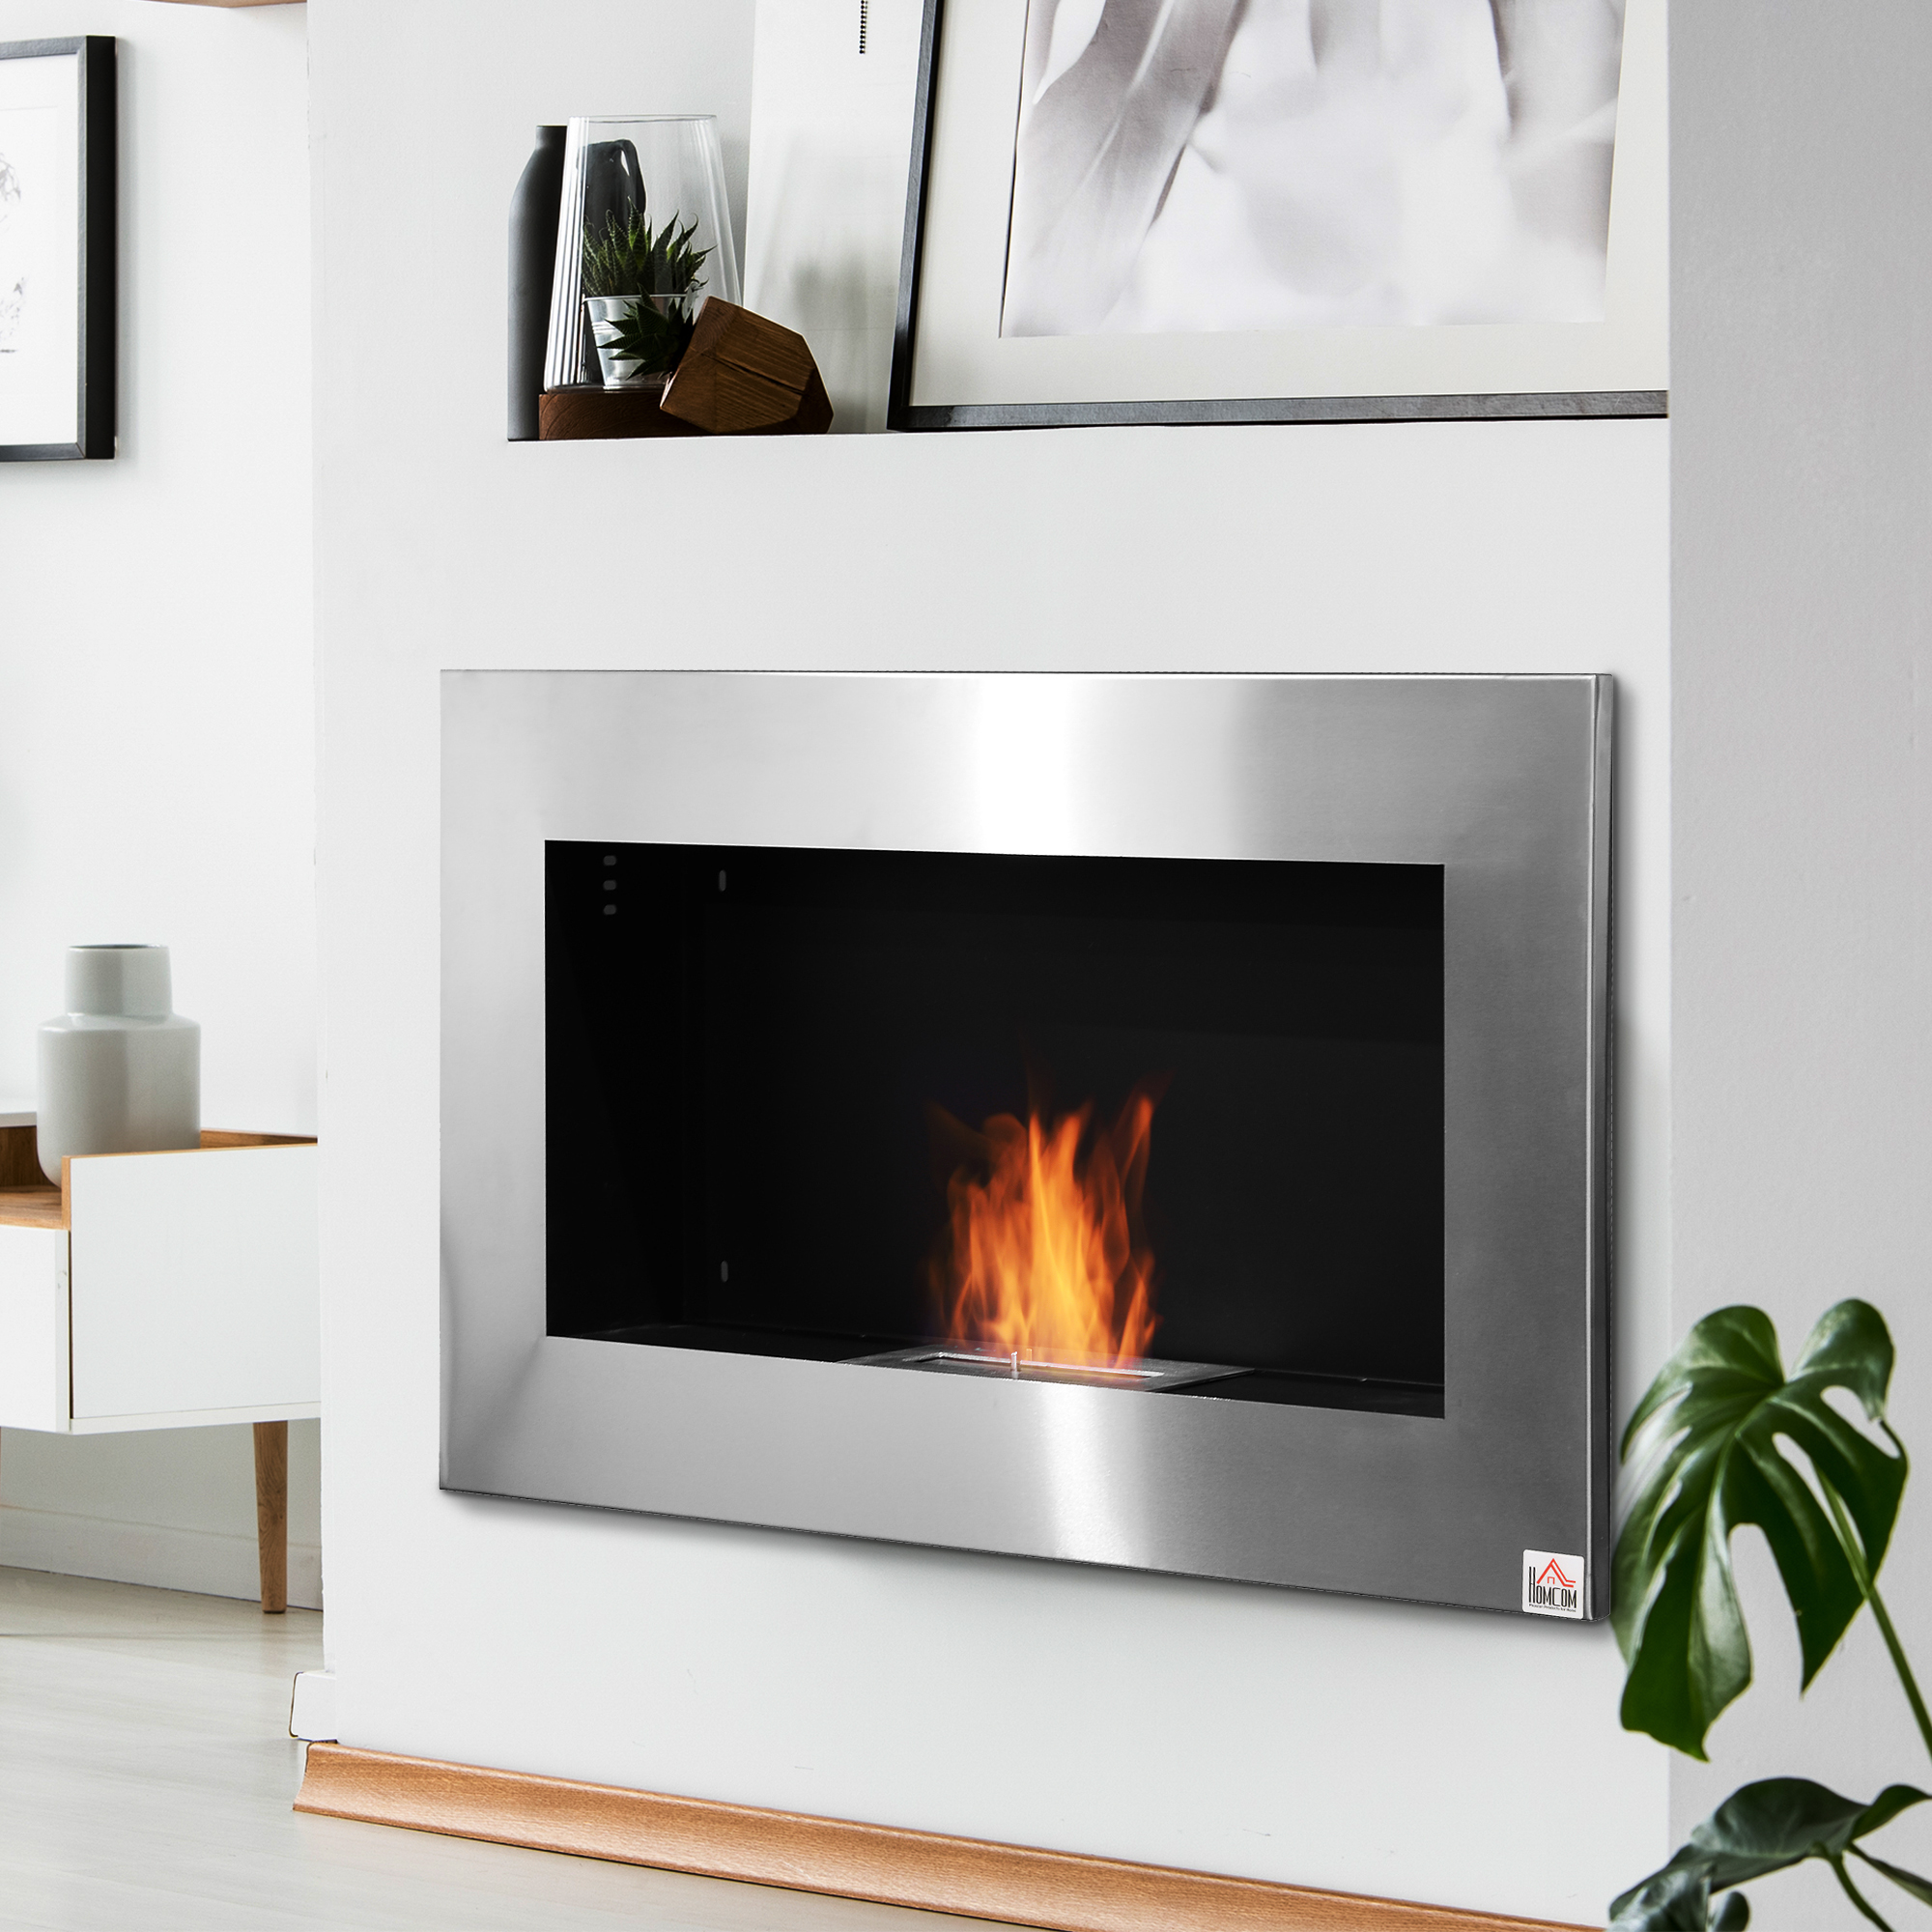 Contemporary Wall Mounted Ventless Bio Ethanol Fireplace Stainless